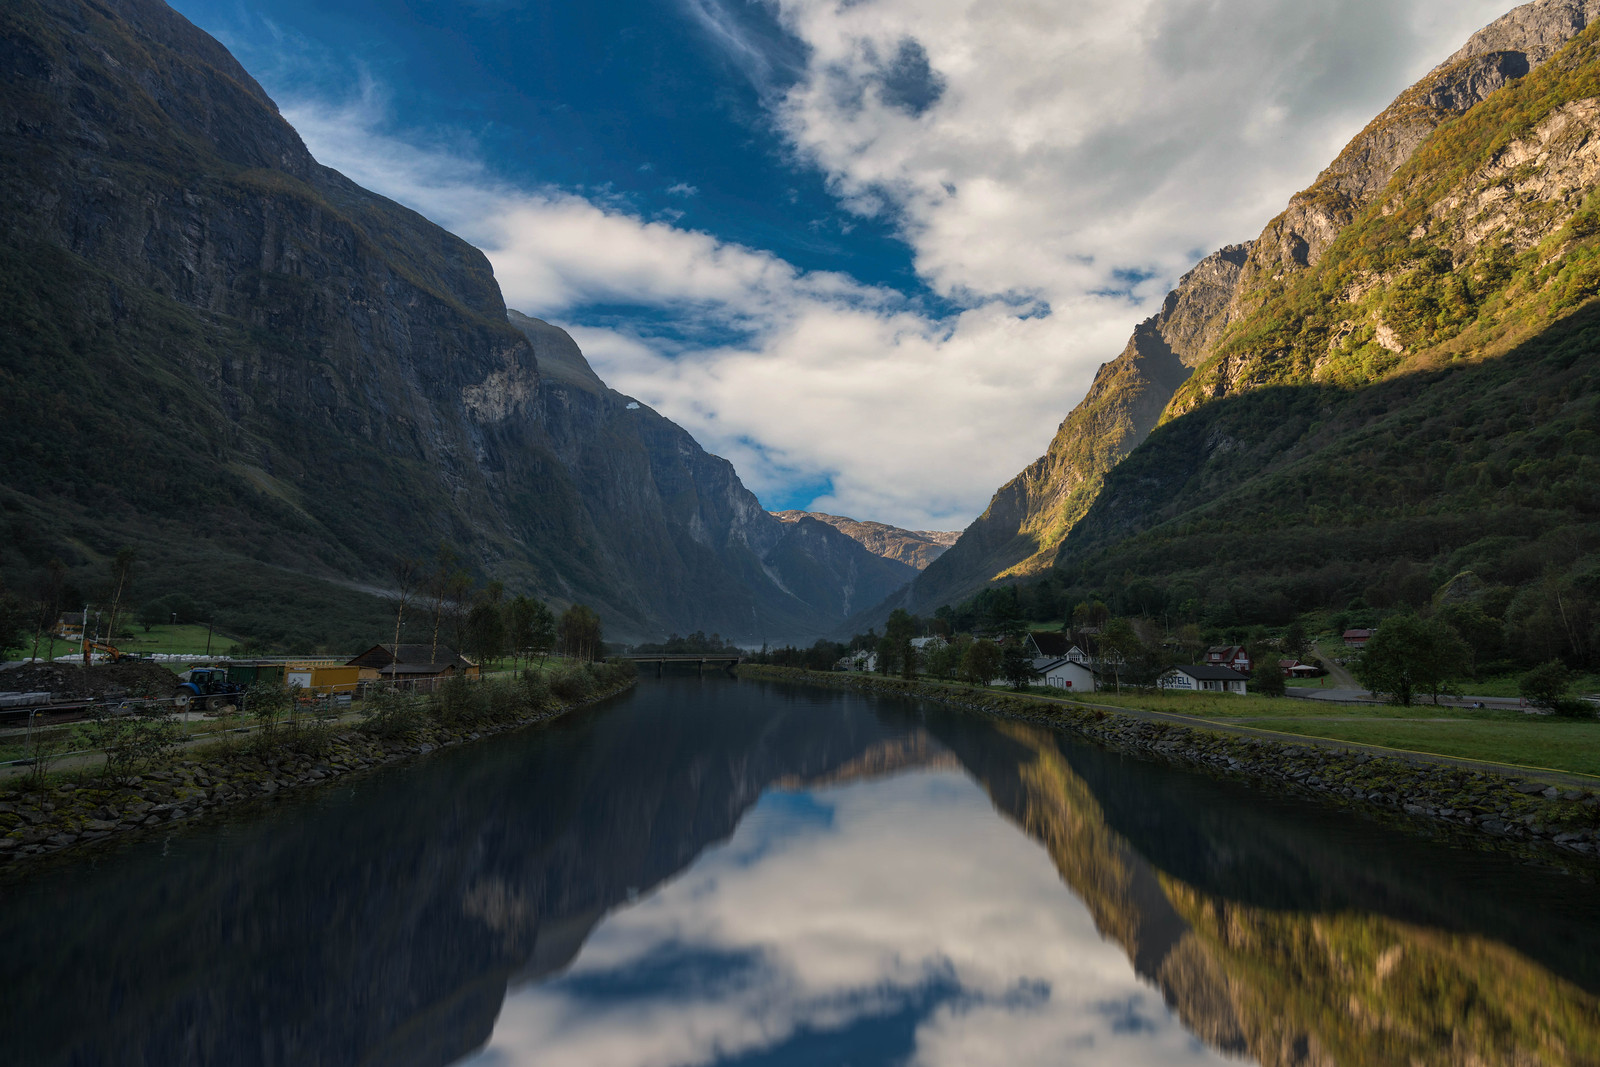 Small Villages dot the landscape along Norway's famous fjords